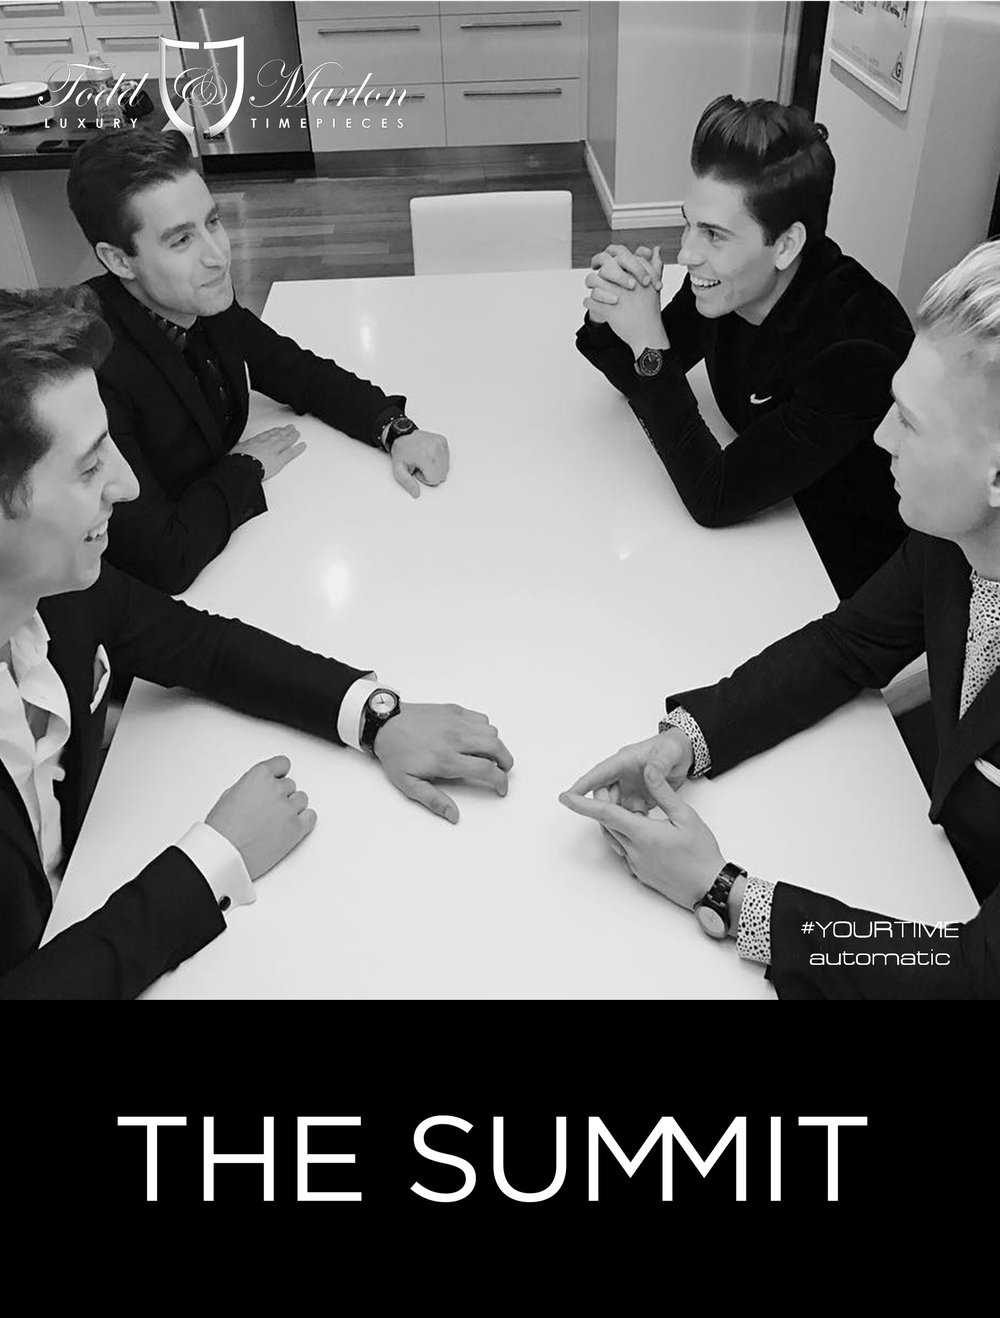 The Summit is a music group of four singers, merging today's pop sound with the Rat Pack's vintage style. Their classic charm, modern suits, and unique sound sets this group apart from any other. For more information visit www.wearethesummit.com or follow them on all social media platforms at @WeAreTheSummit.